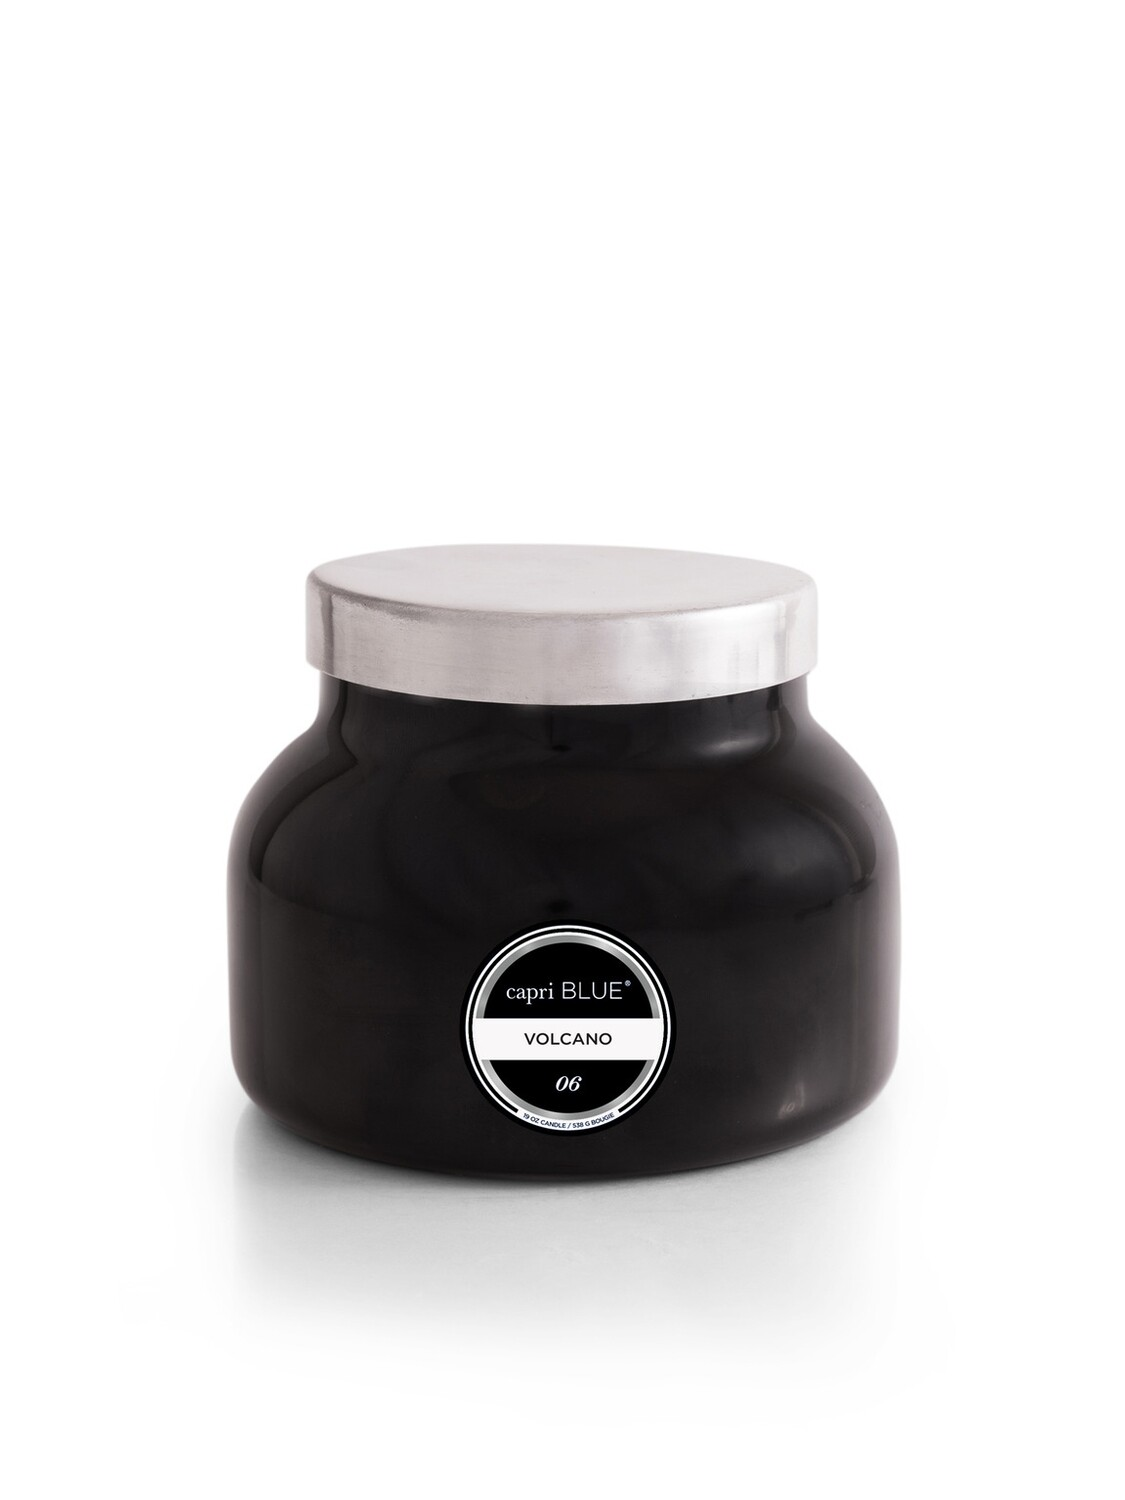 Volcano Candle -Black- Capri Blue Signature Jar 19oz